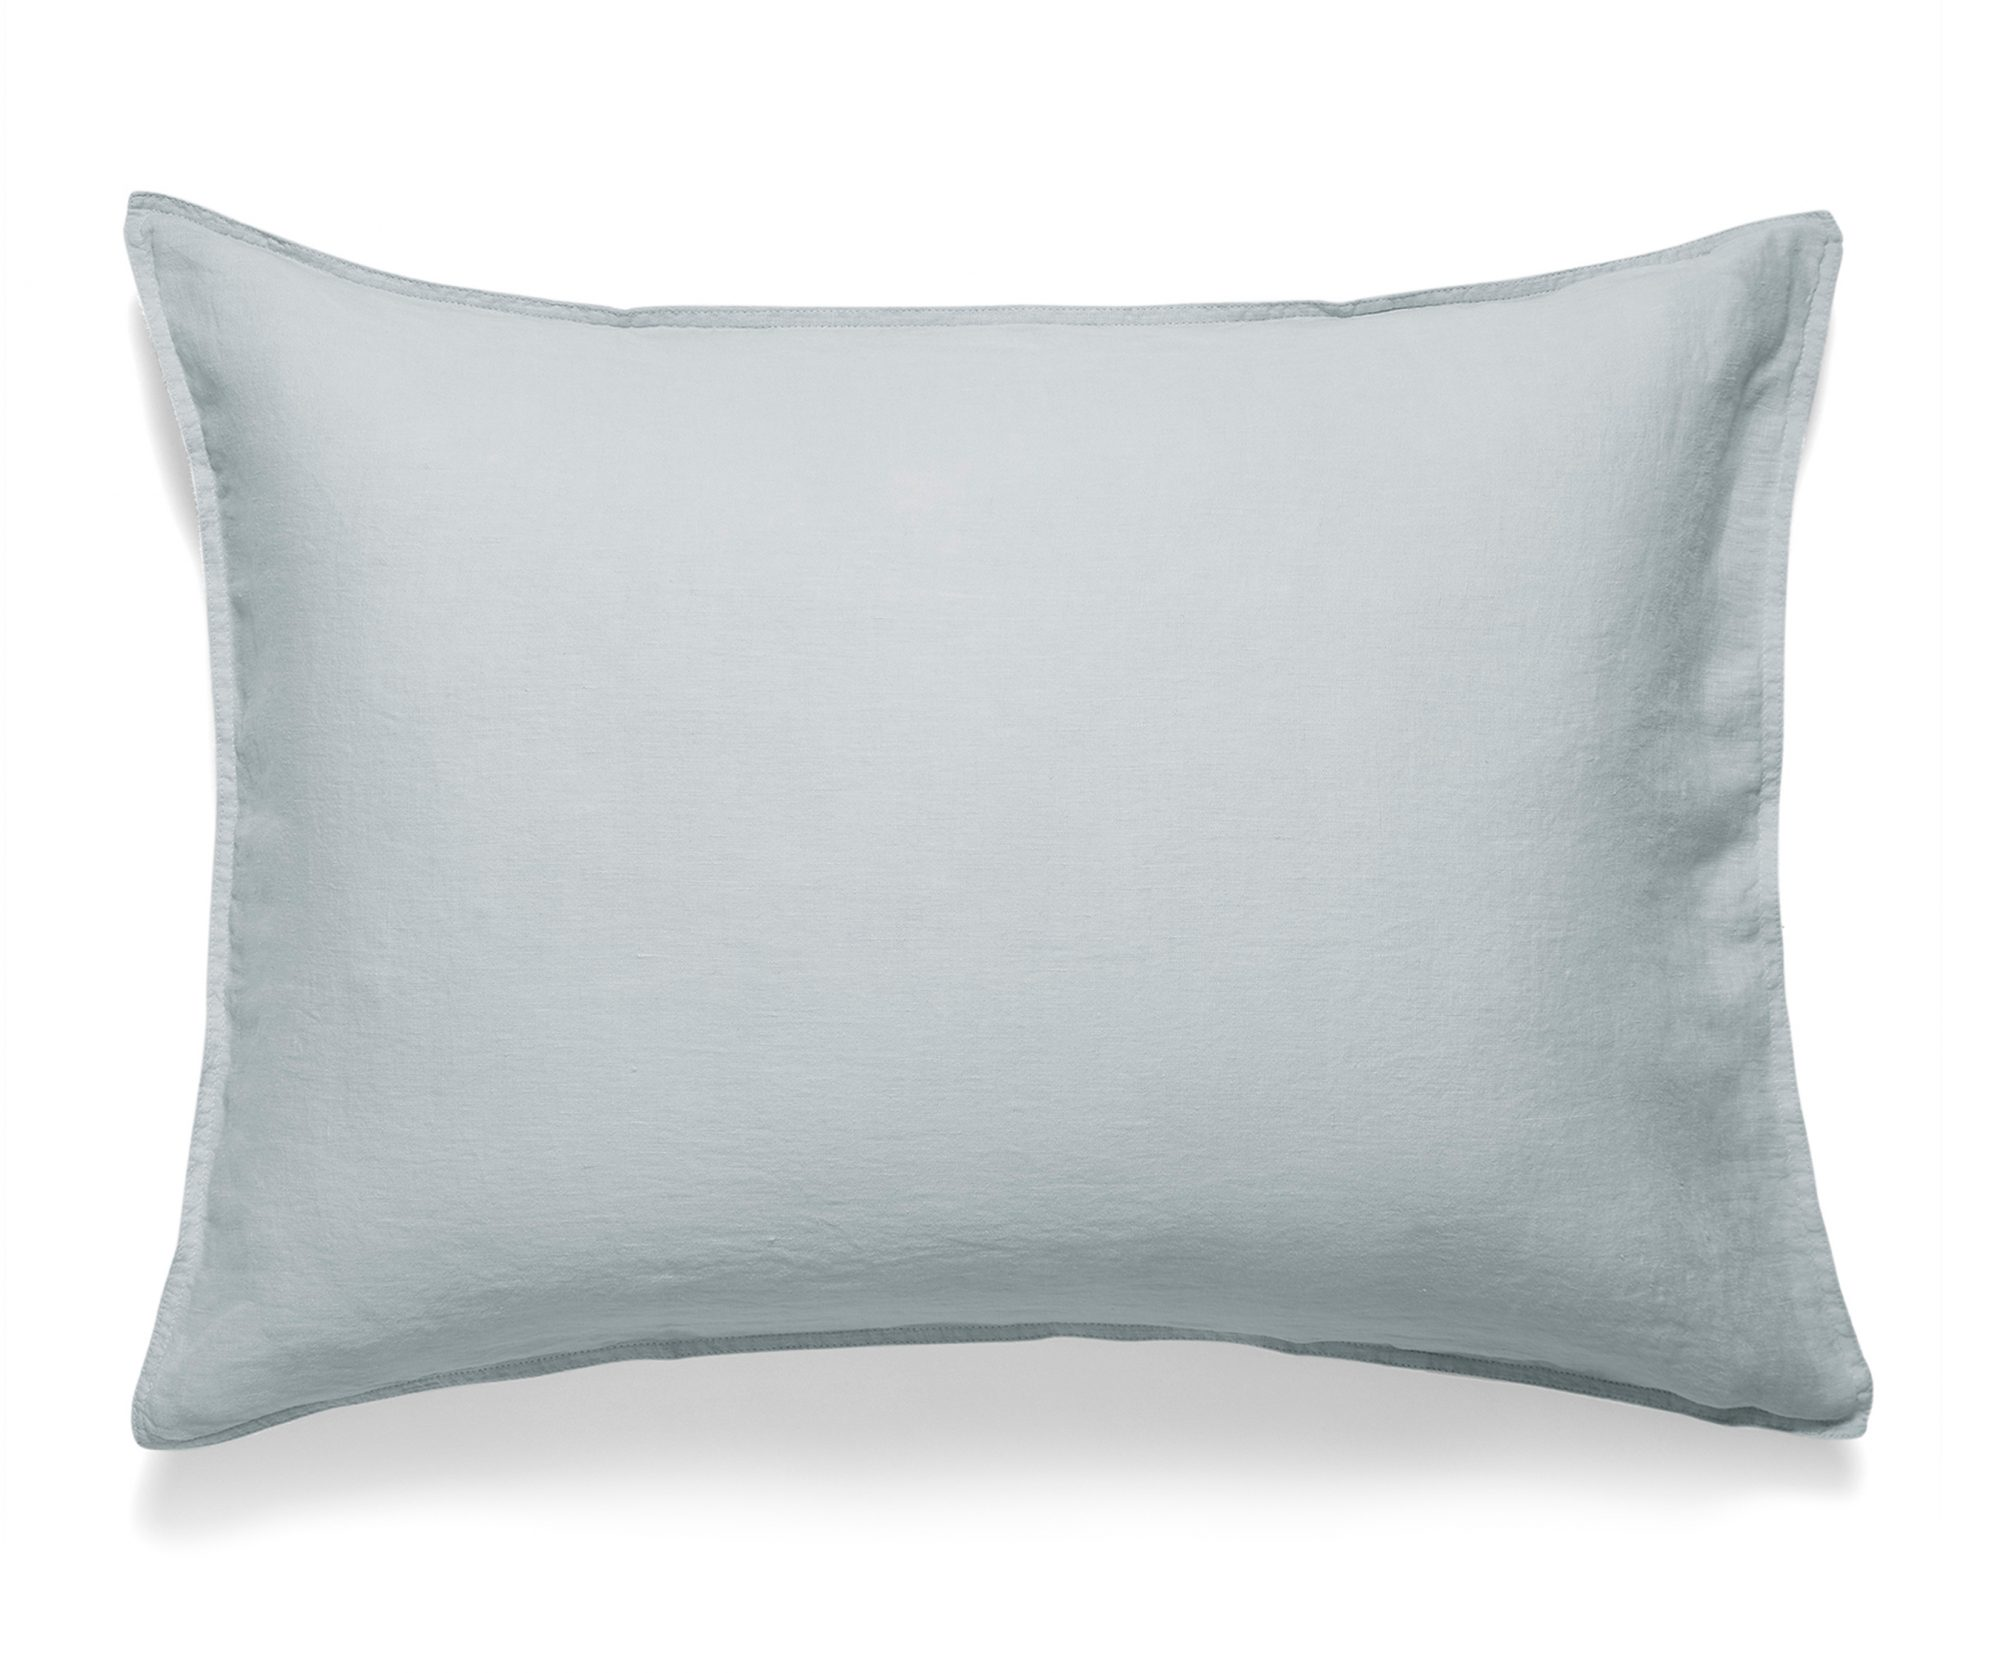 Linen Pillowcases in Mist from Brooklinen